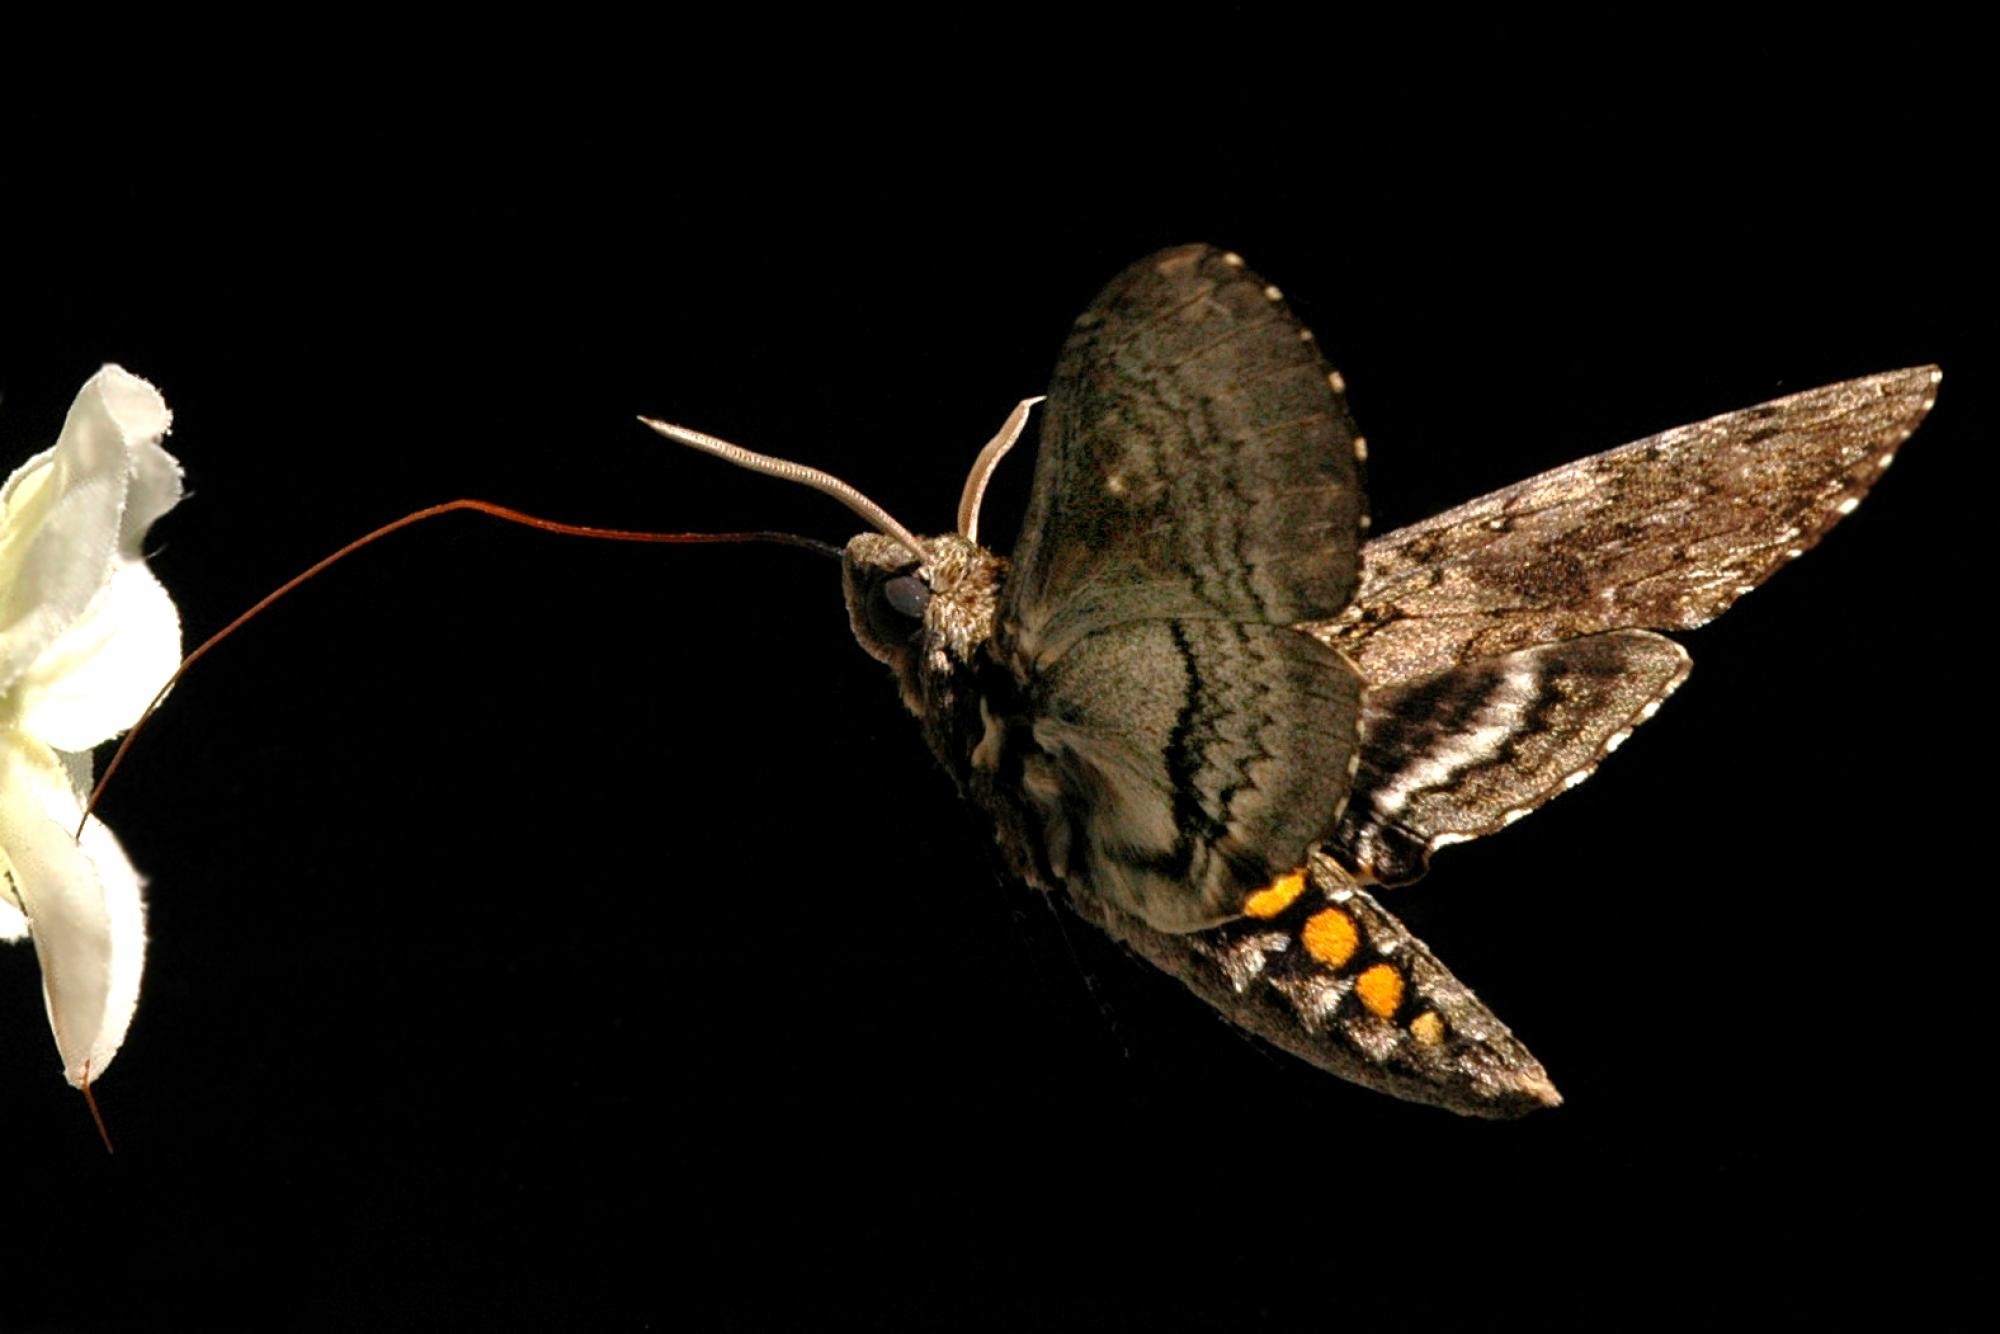 An adult Manduca sexta moth hovers in front of a flower while drinking nectar at night.